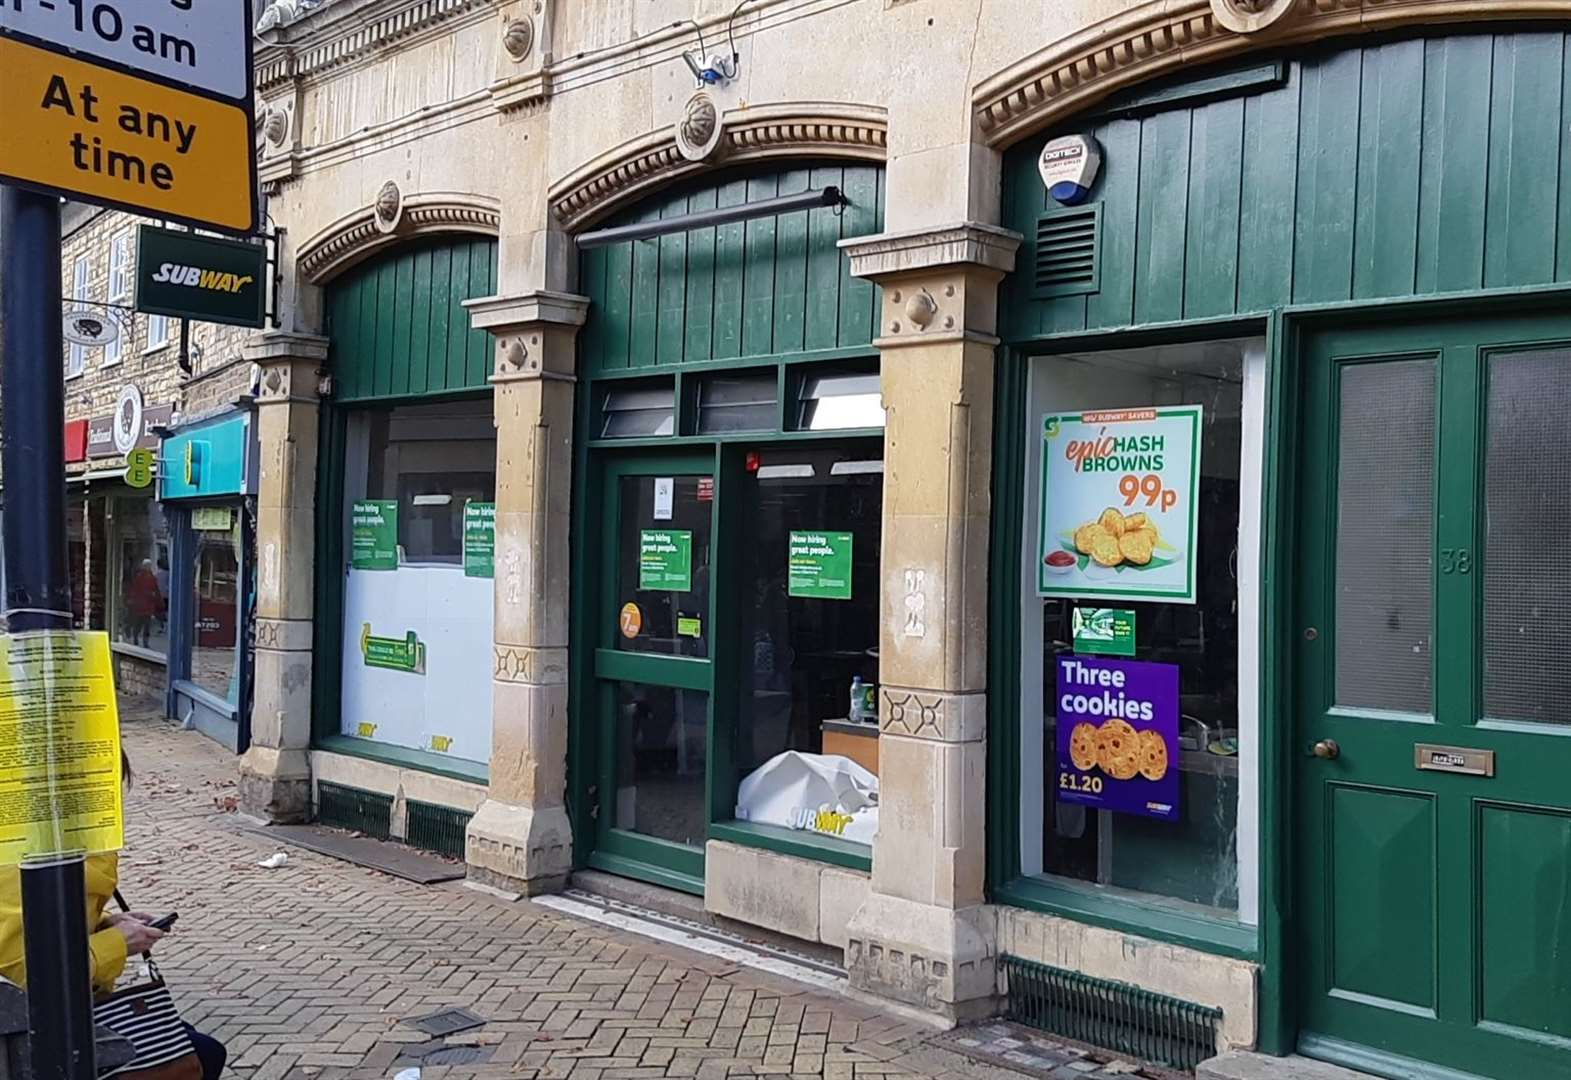 Stamford's Subway branch now re-opening 'before the end of the year'